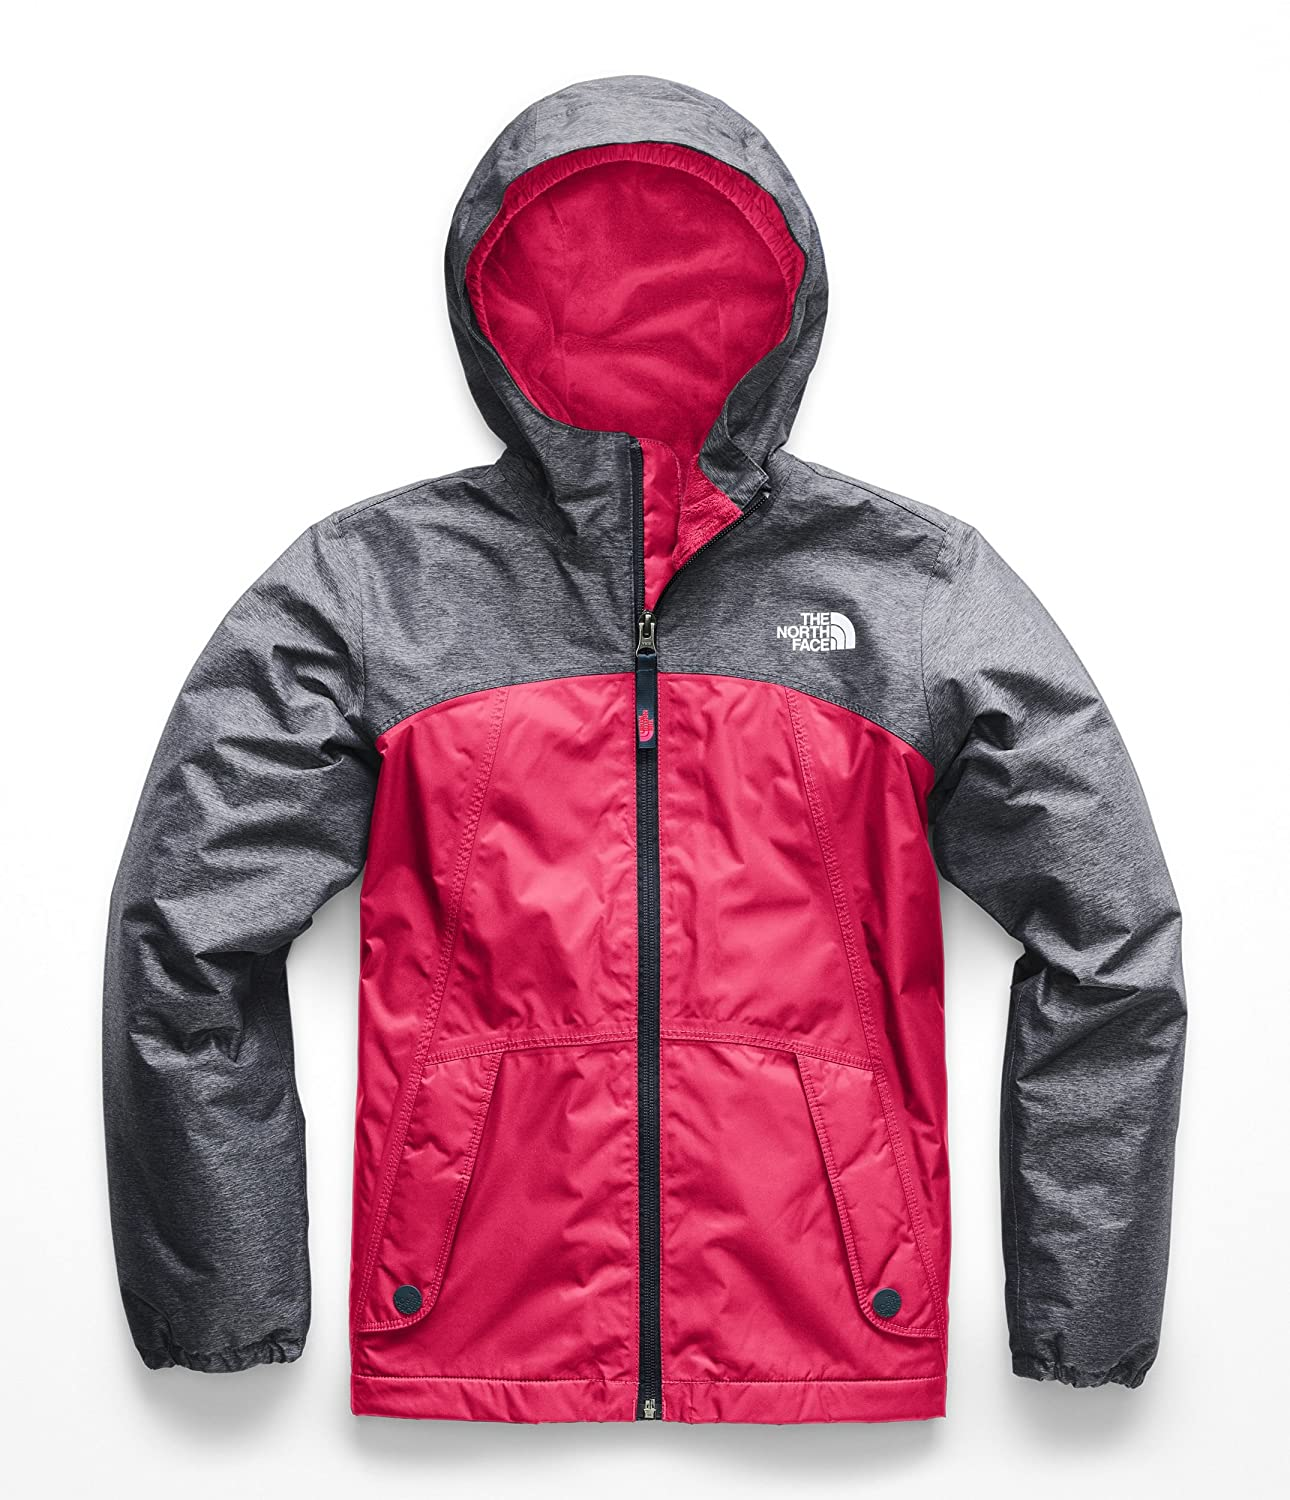 The North Face Girls' Warm Storm Jacket (Little Kids/Big Kids) NF0A34UX